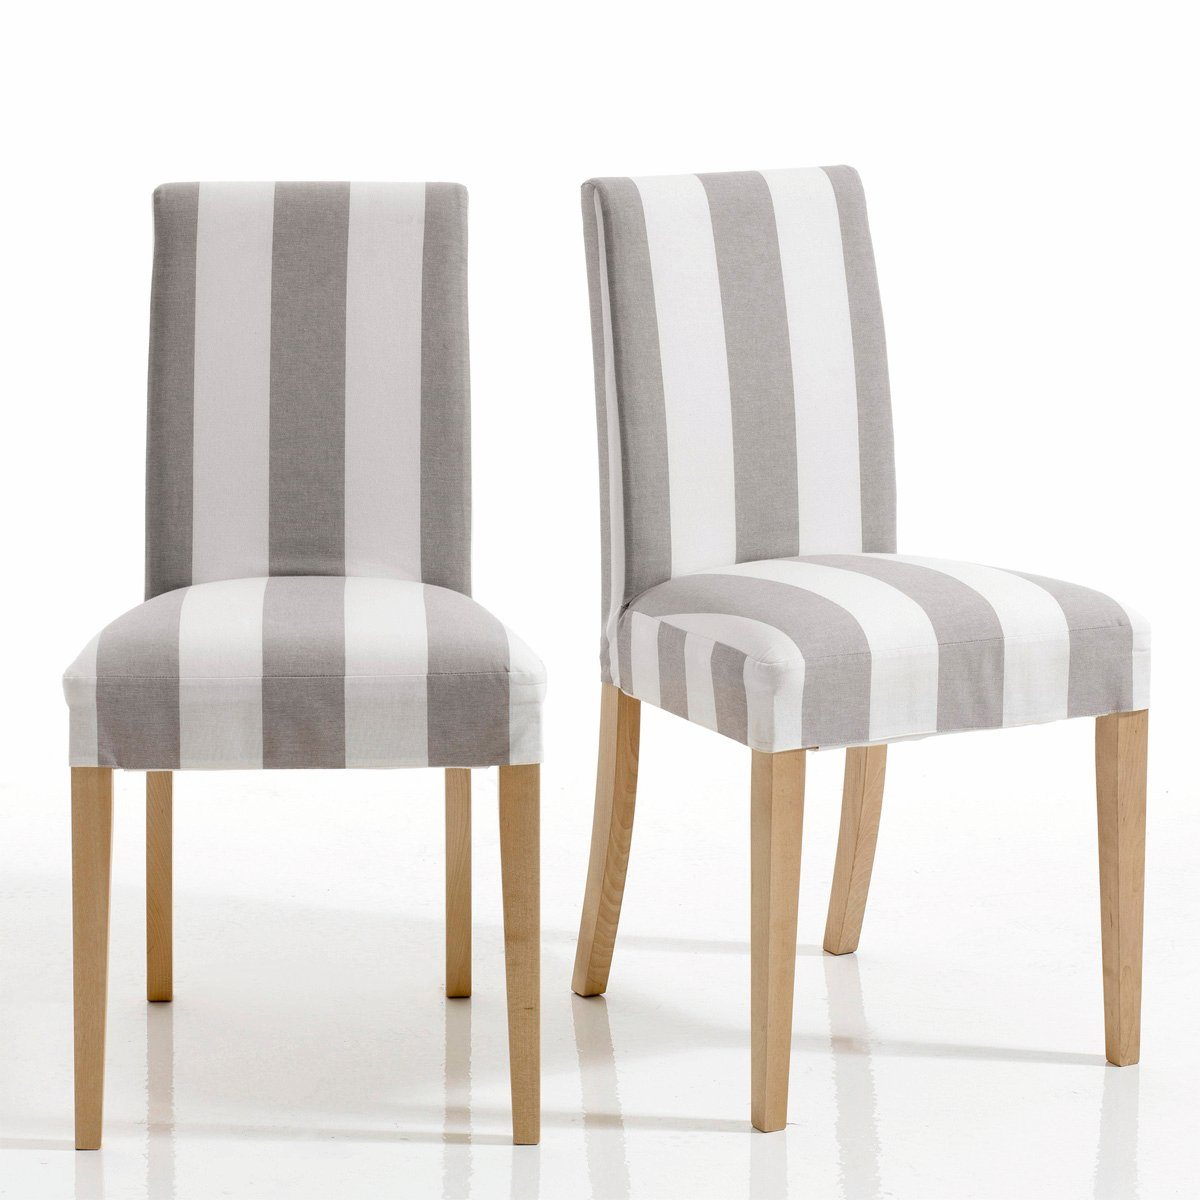 Chaise d houssable inqaluit lot de 2 chaises la - Maison du monde housse de chaise ...